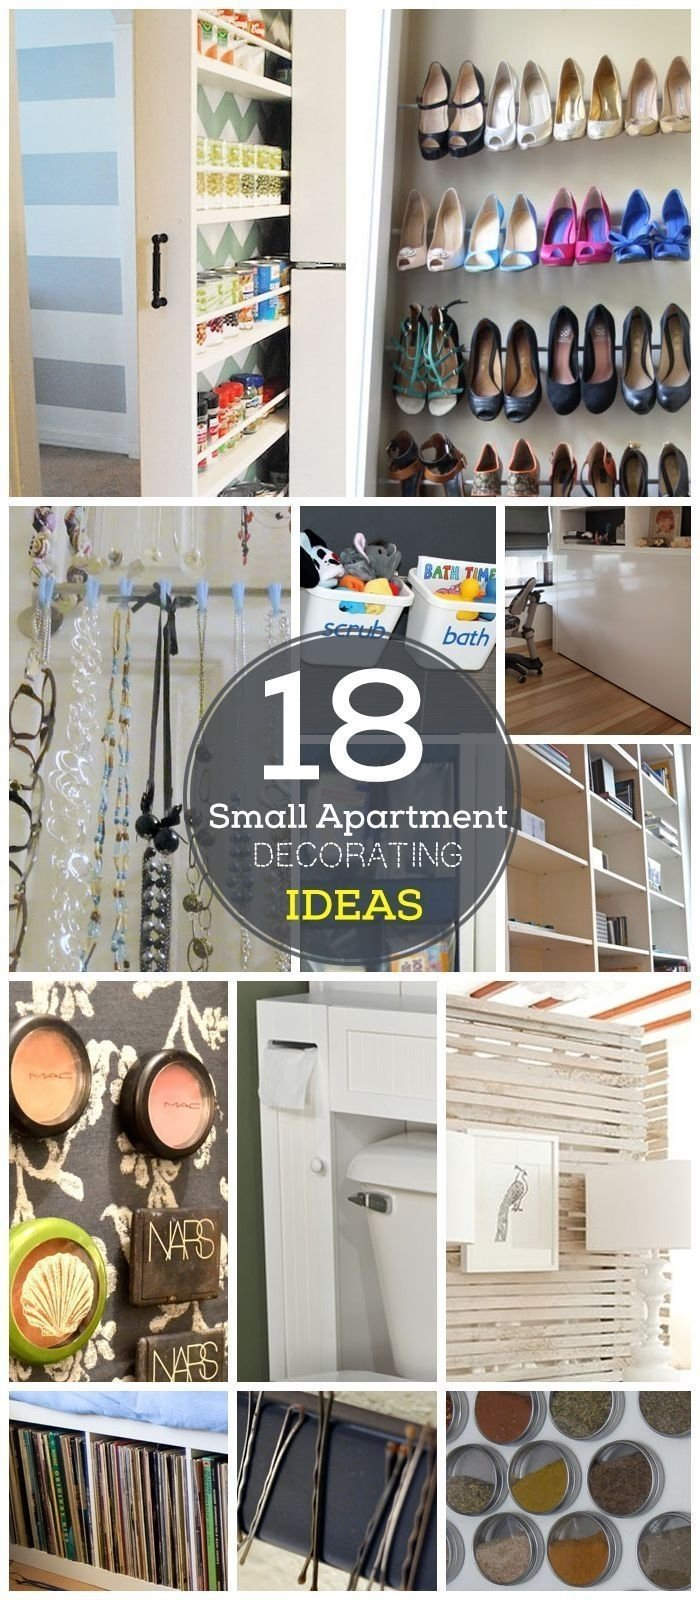 10 Attractive Diy Organization Ideas For Small Spaces 18 diy small apartment decorating ideas click for tutorials diy 2020